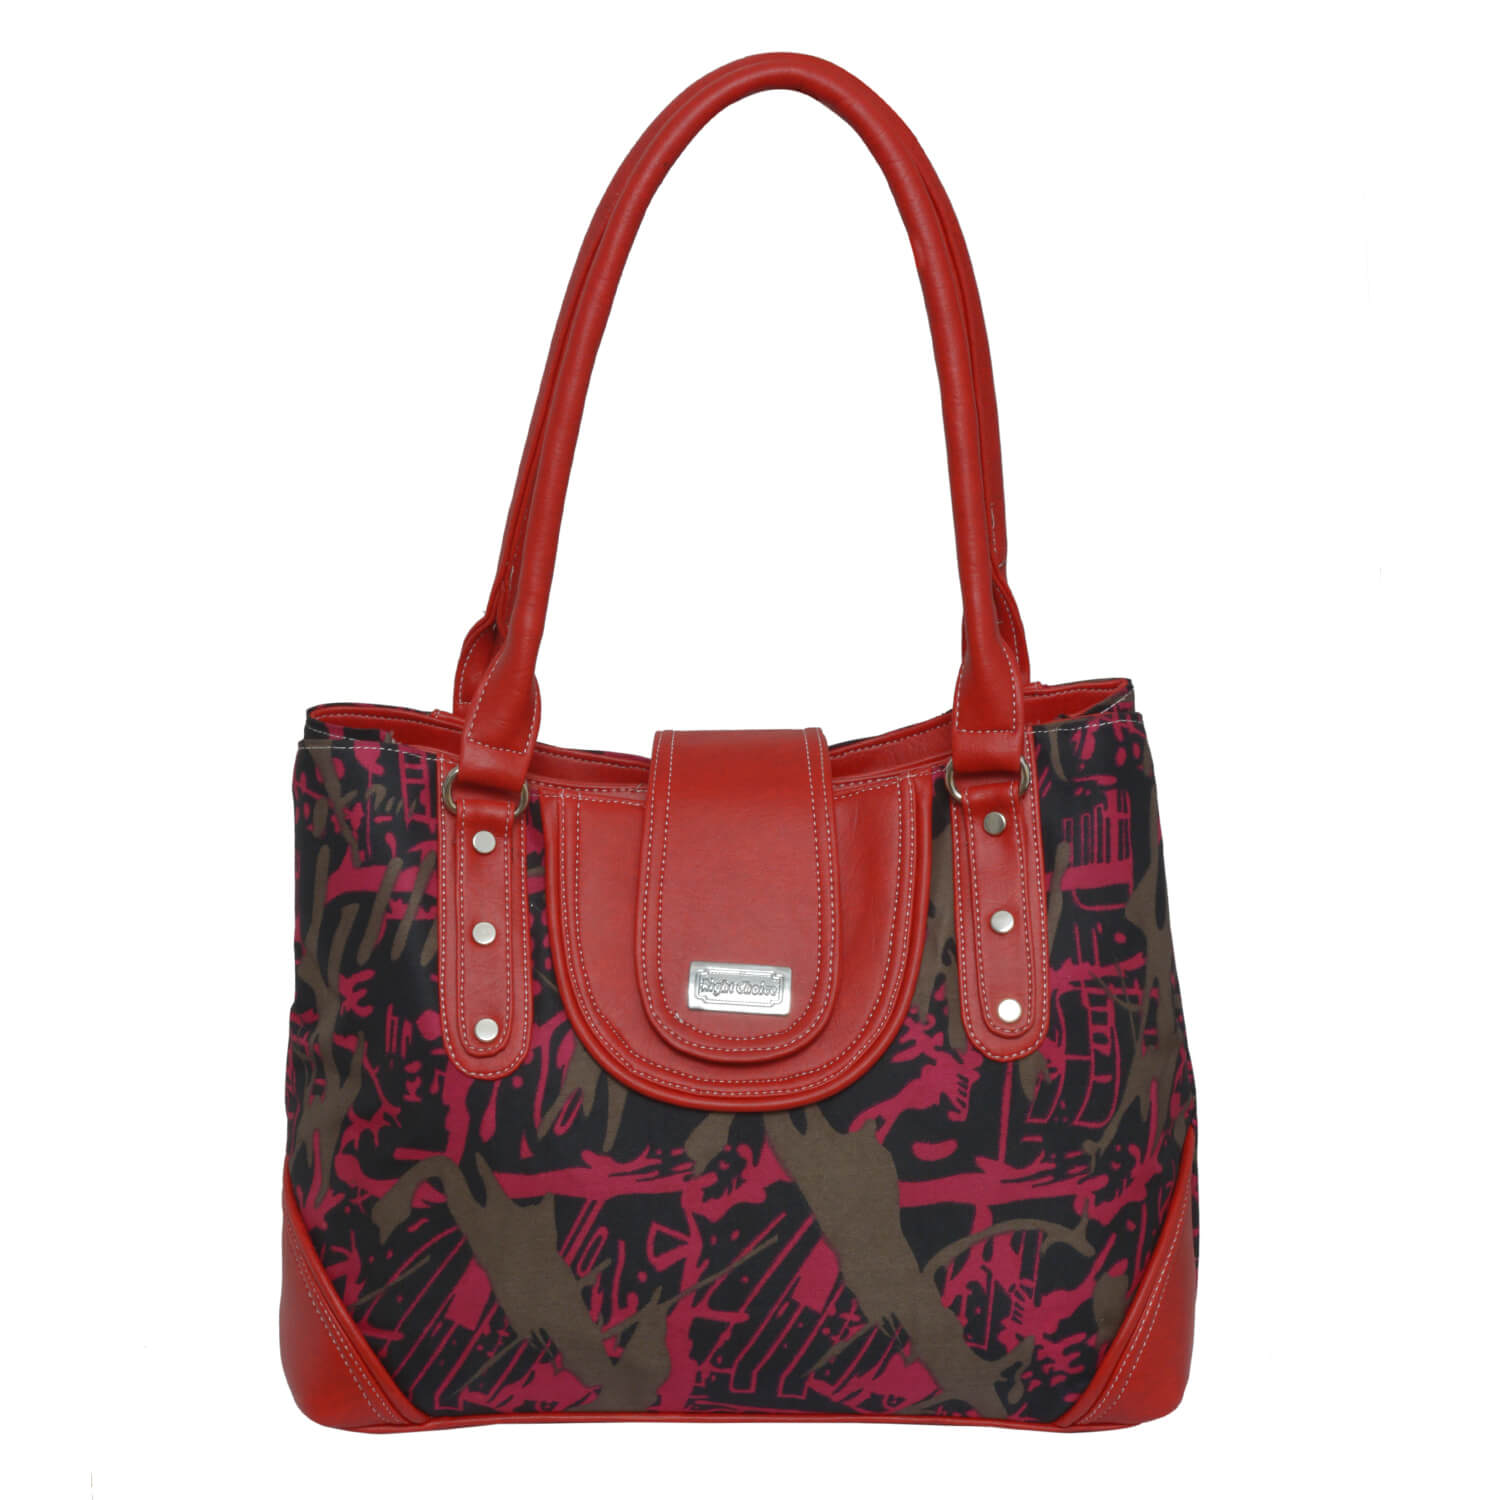 Right Choice RCH313 women's handbags in a modern type